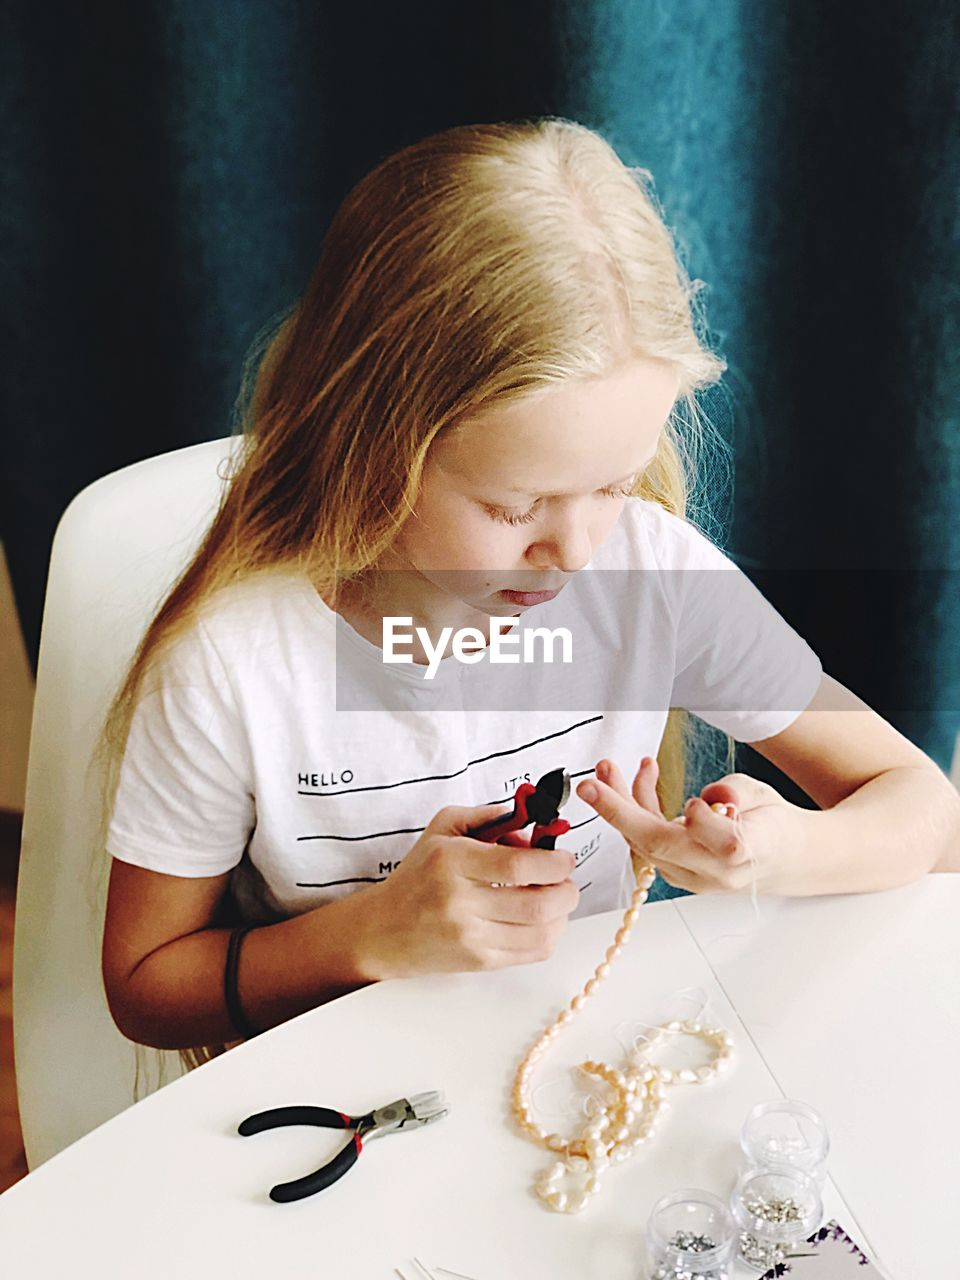 High Angle View Of Girl Making Bead Necklace At Table